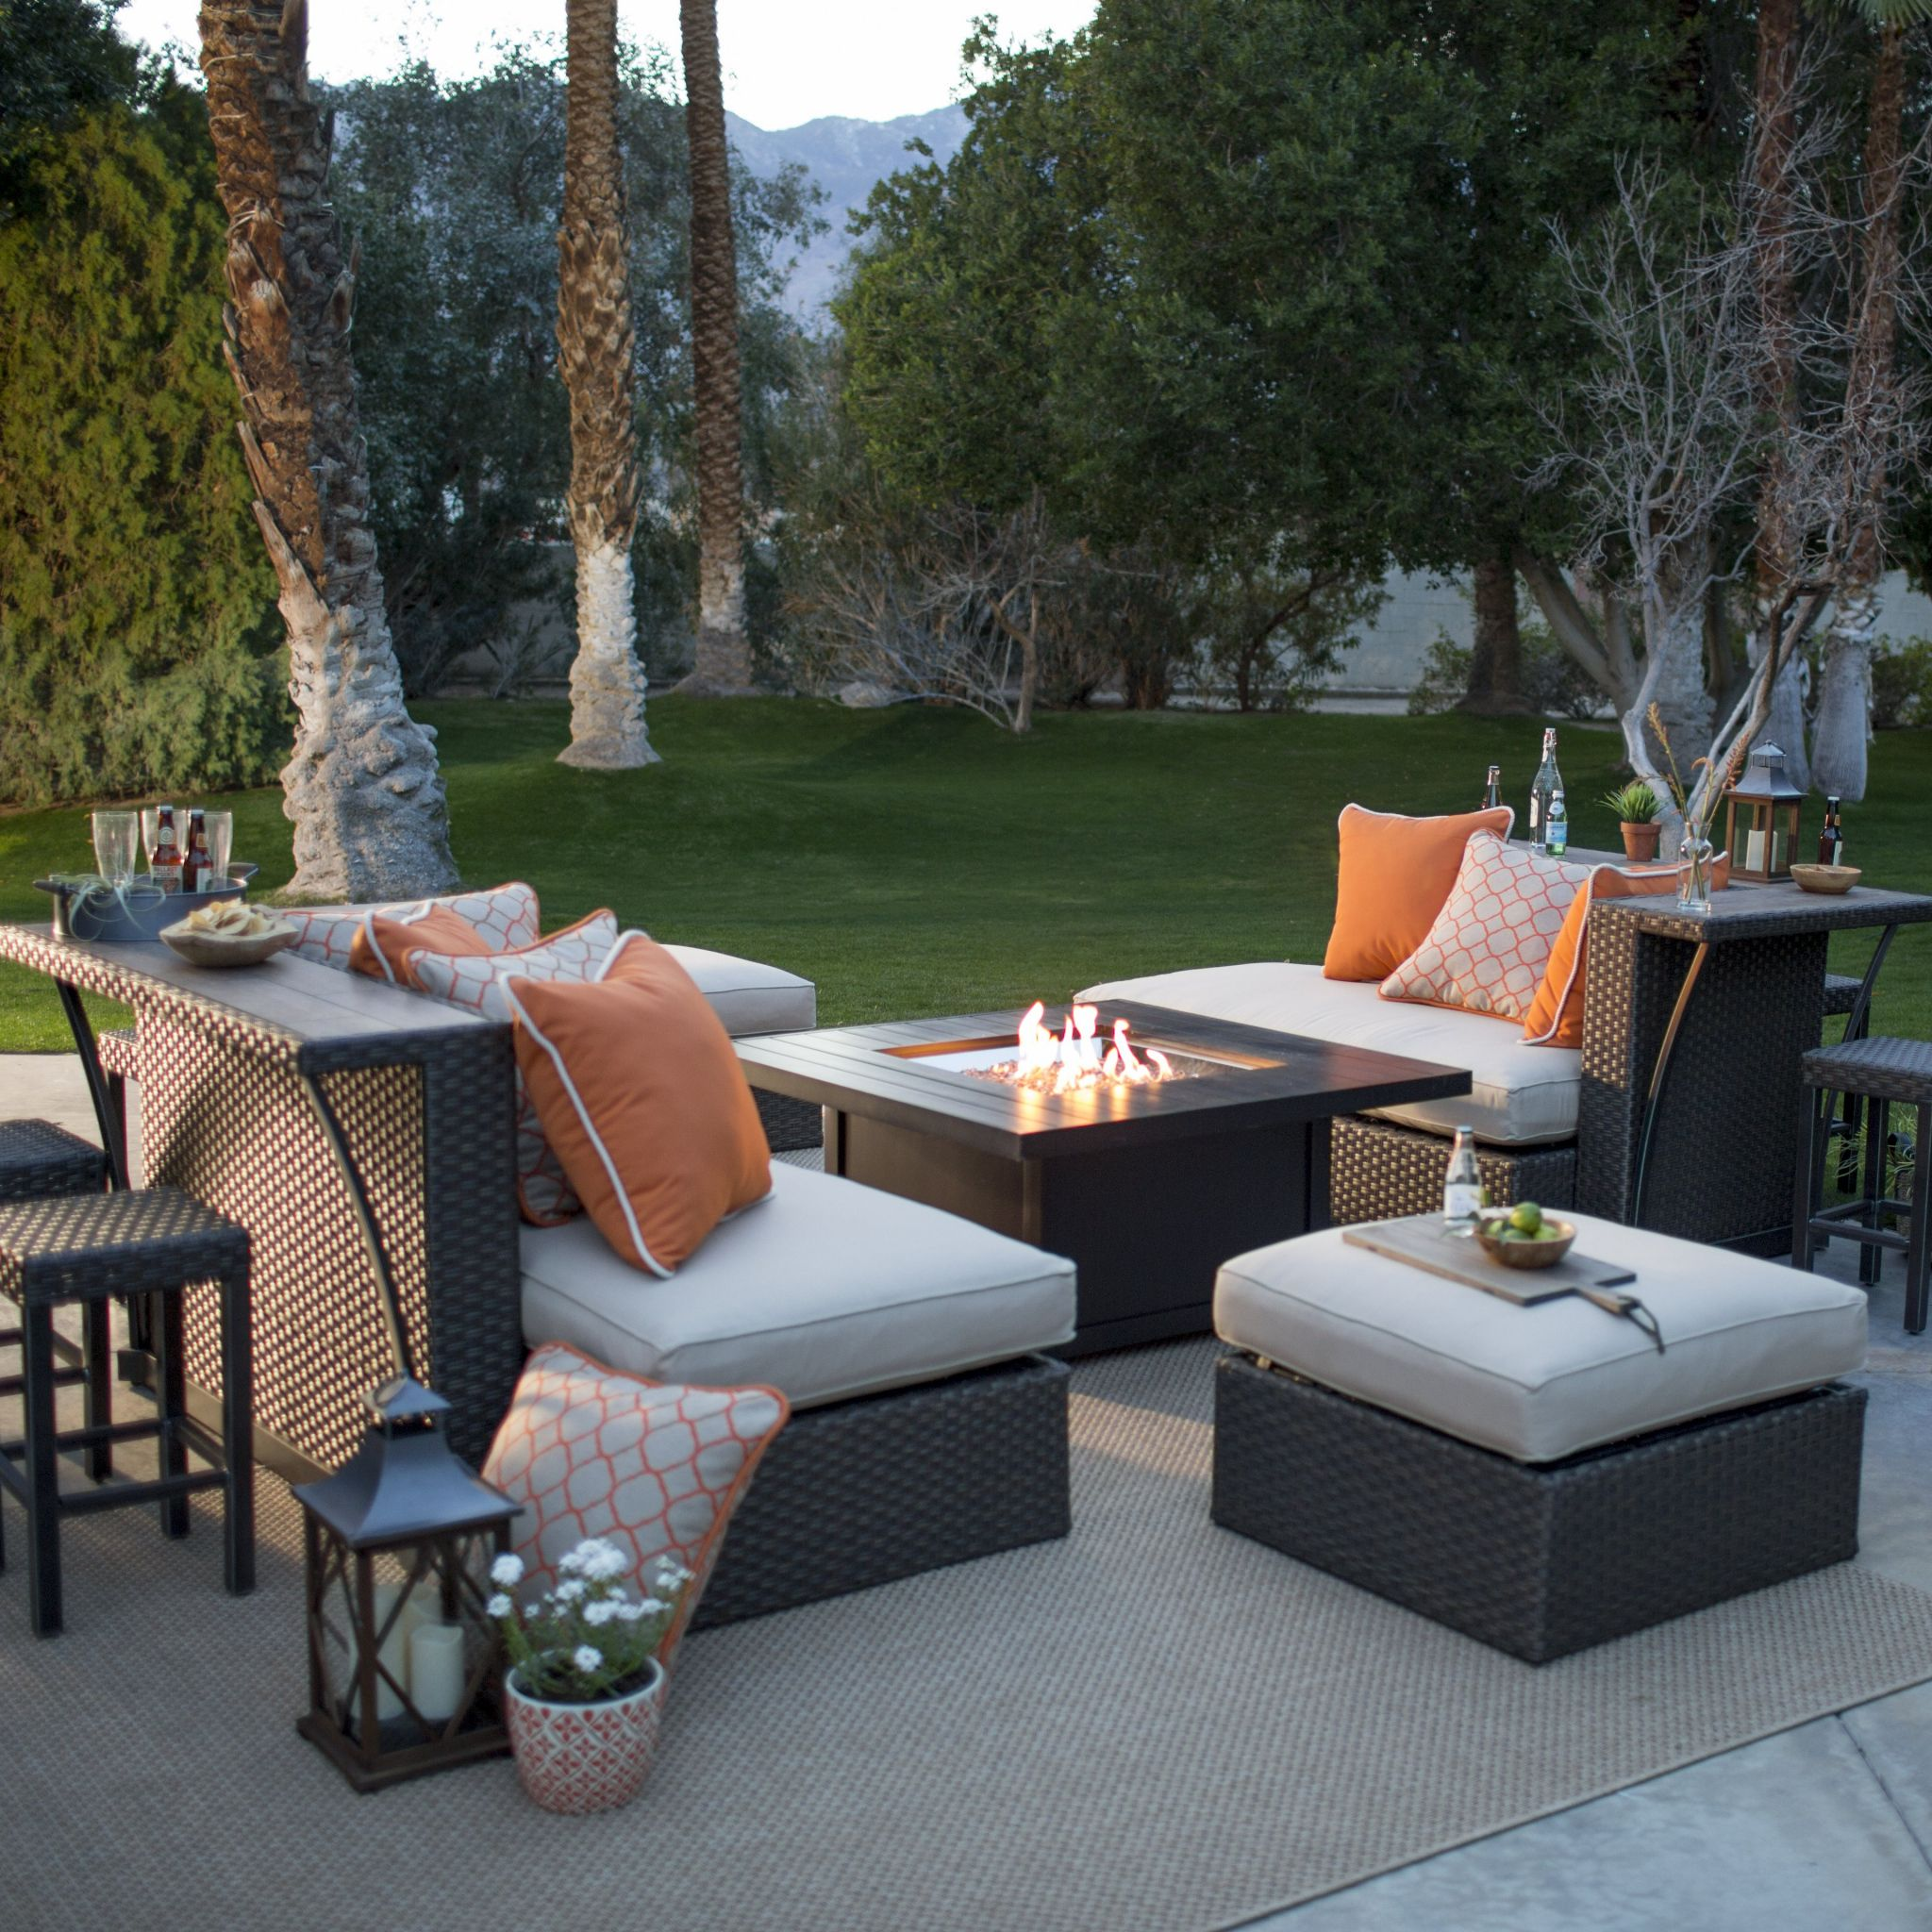 Charmant Outdoor Patio Furniture With Fire Pit   Interior House Paint Colors Check  More At Http: